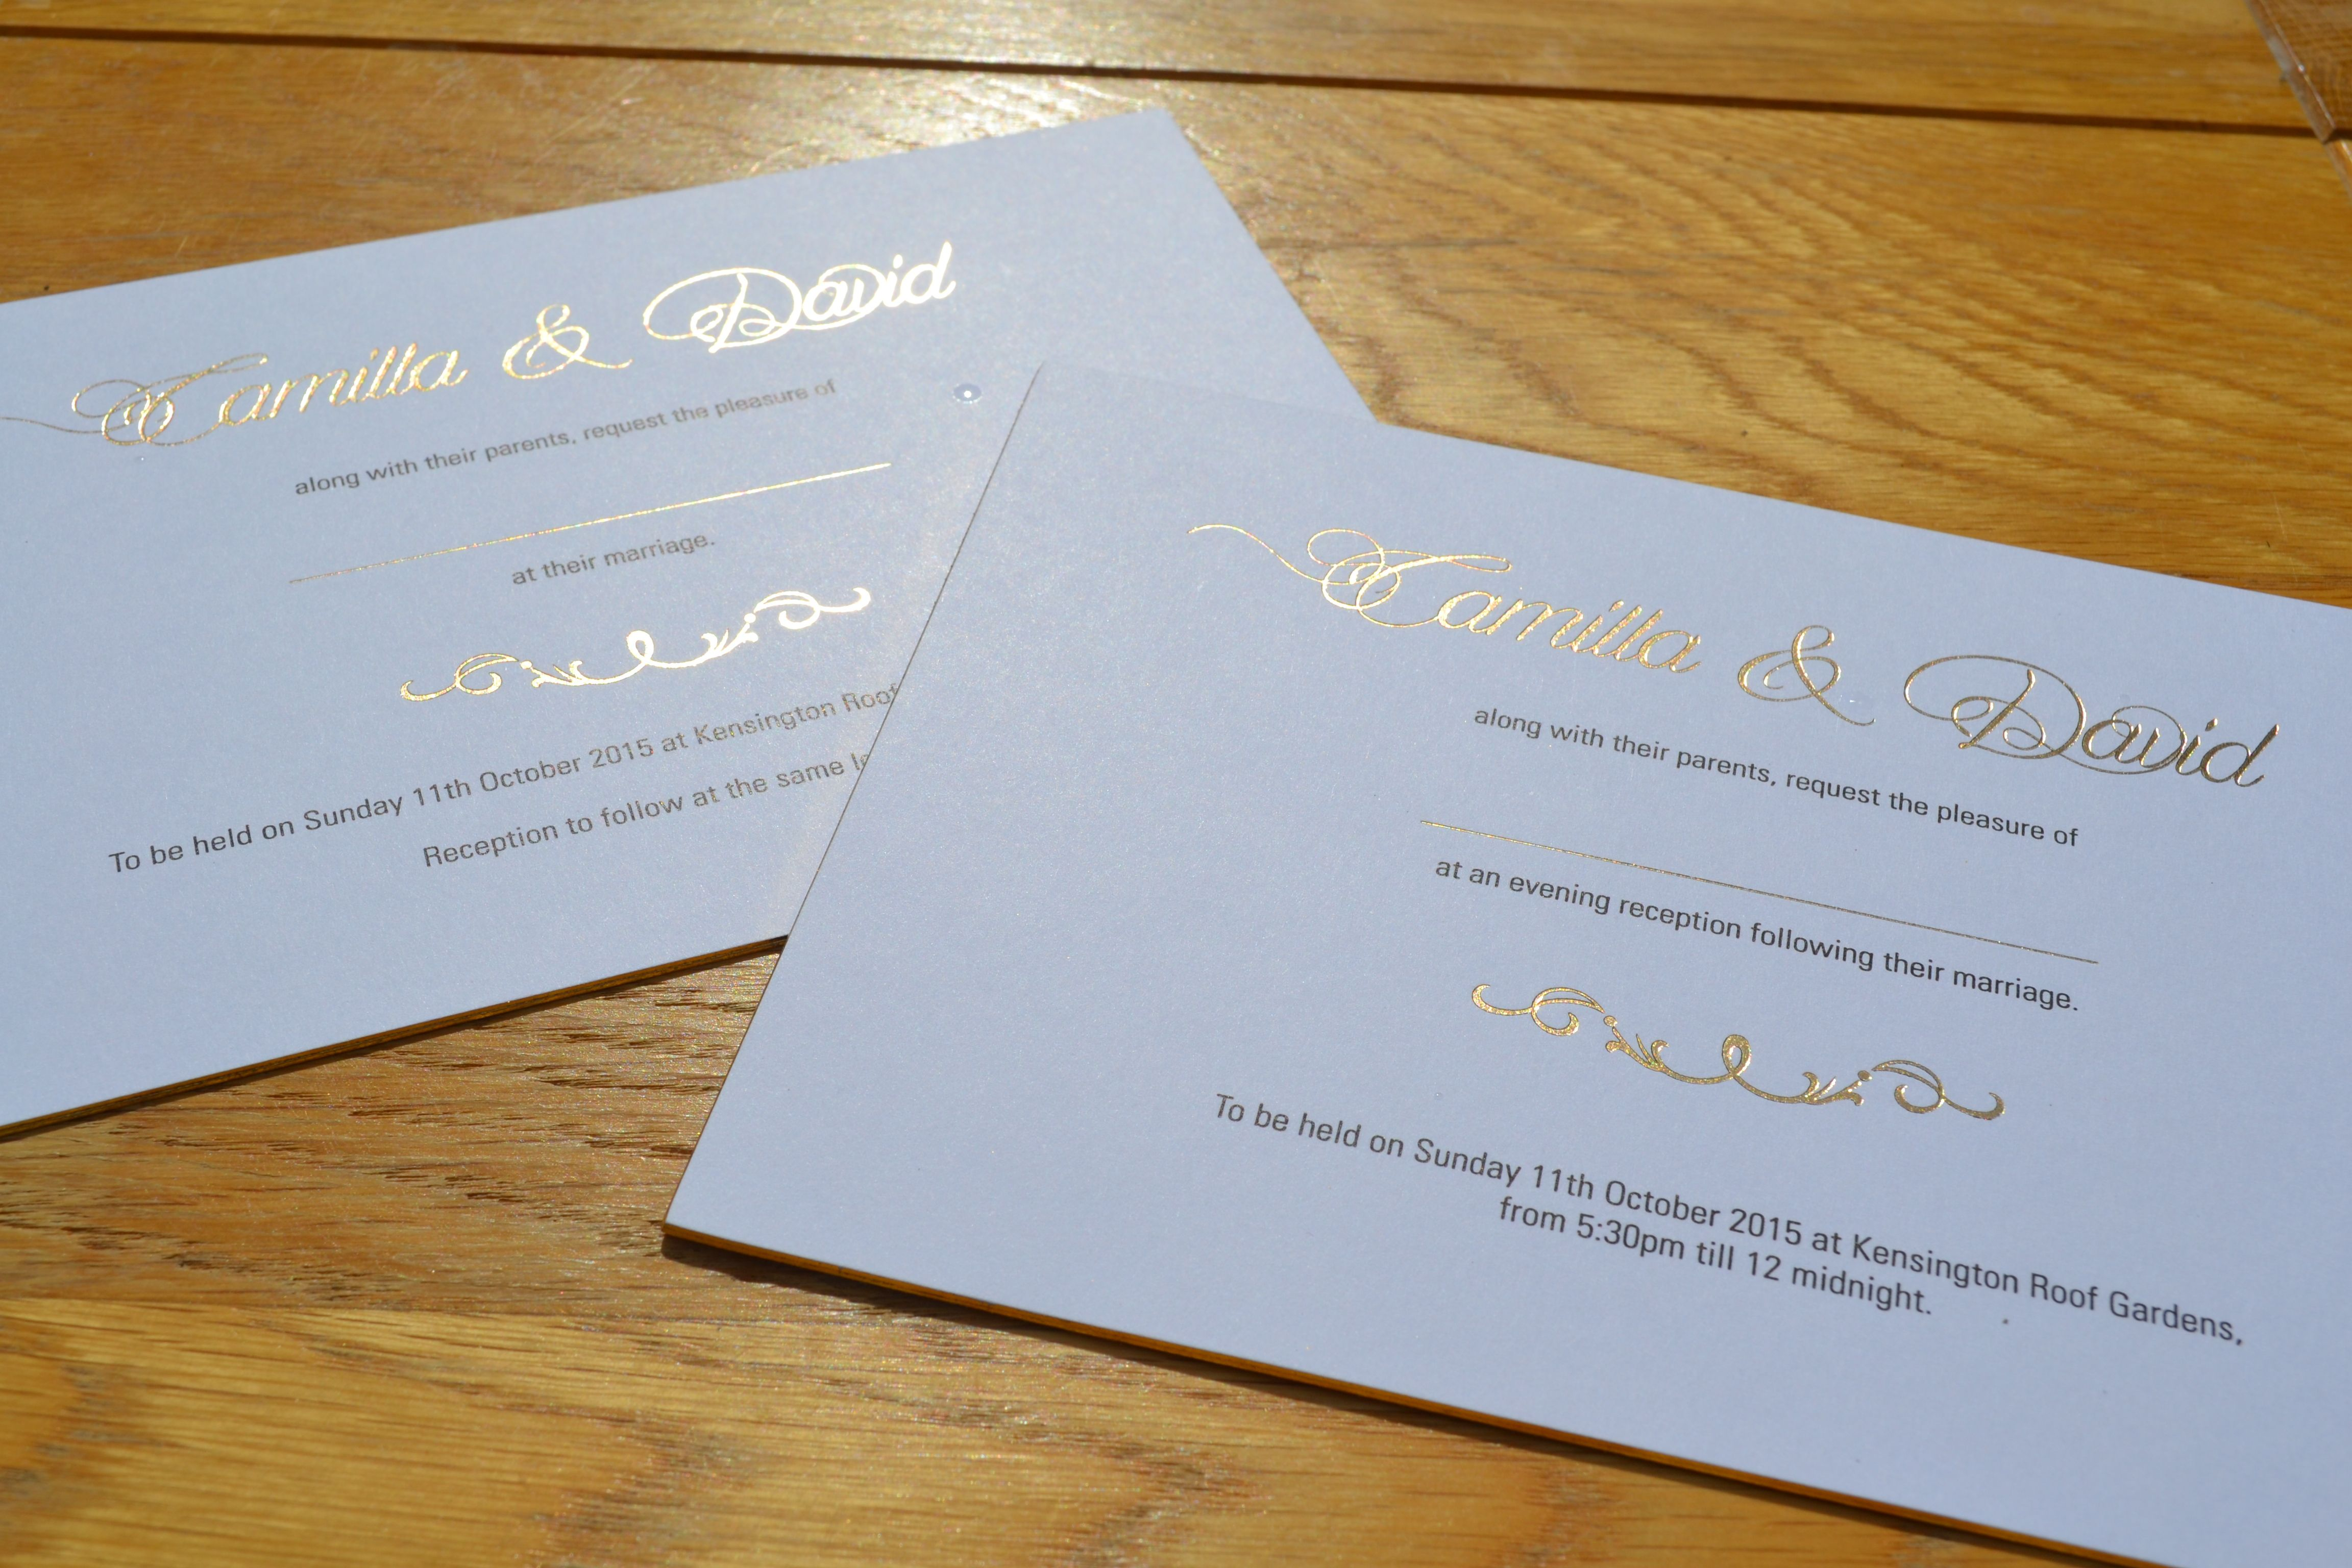 Wedding Invitations Printed In Gold Foil U0026 Black Litho Flat Print On Gold  Gilt Edged Cards